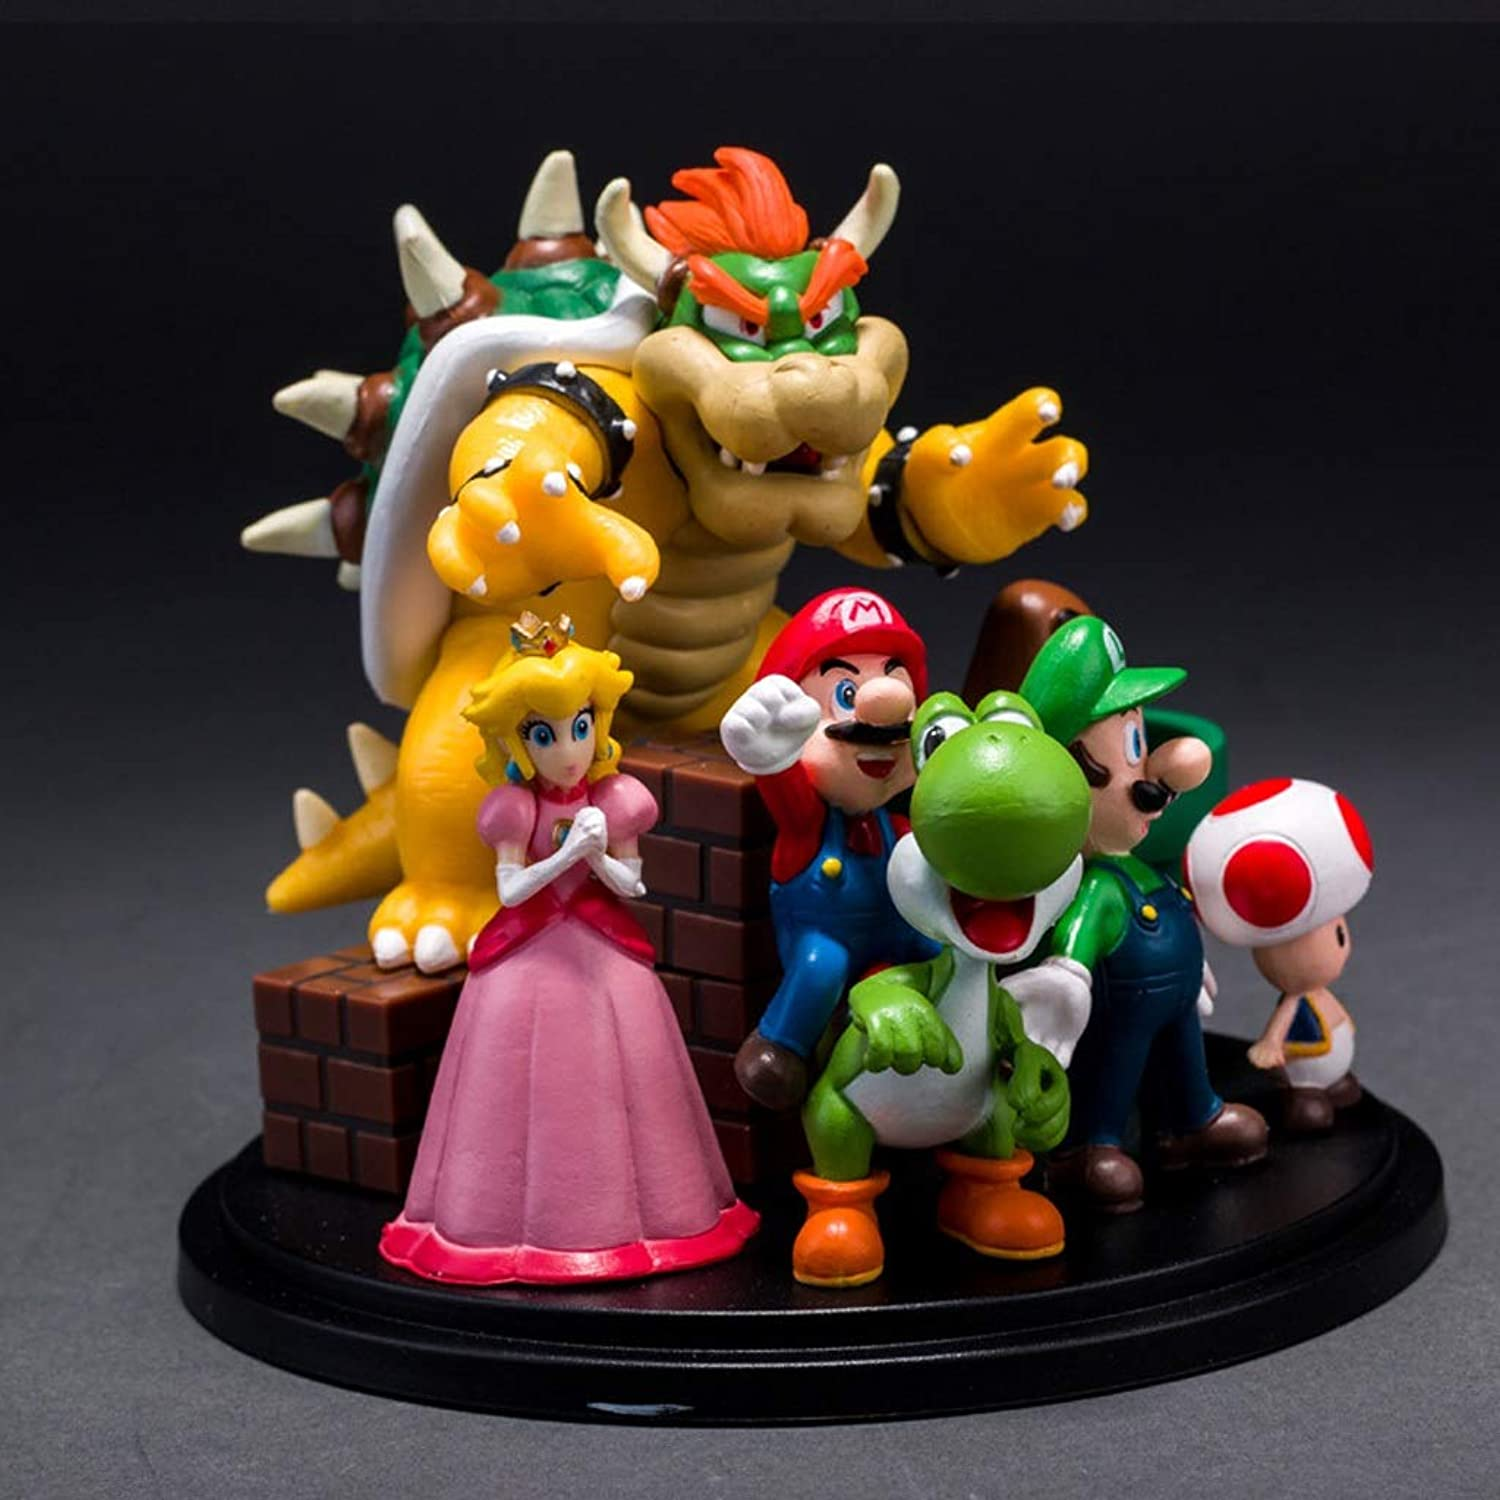 Zxwzzz Toy Statue Super Mario Toy Model Game Character Crafts Decorations Mario Bros Statue